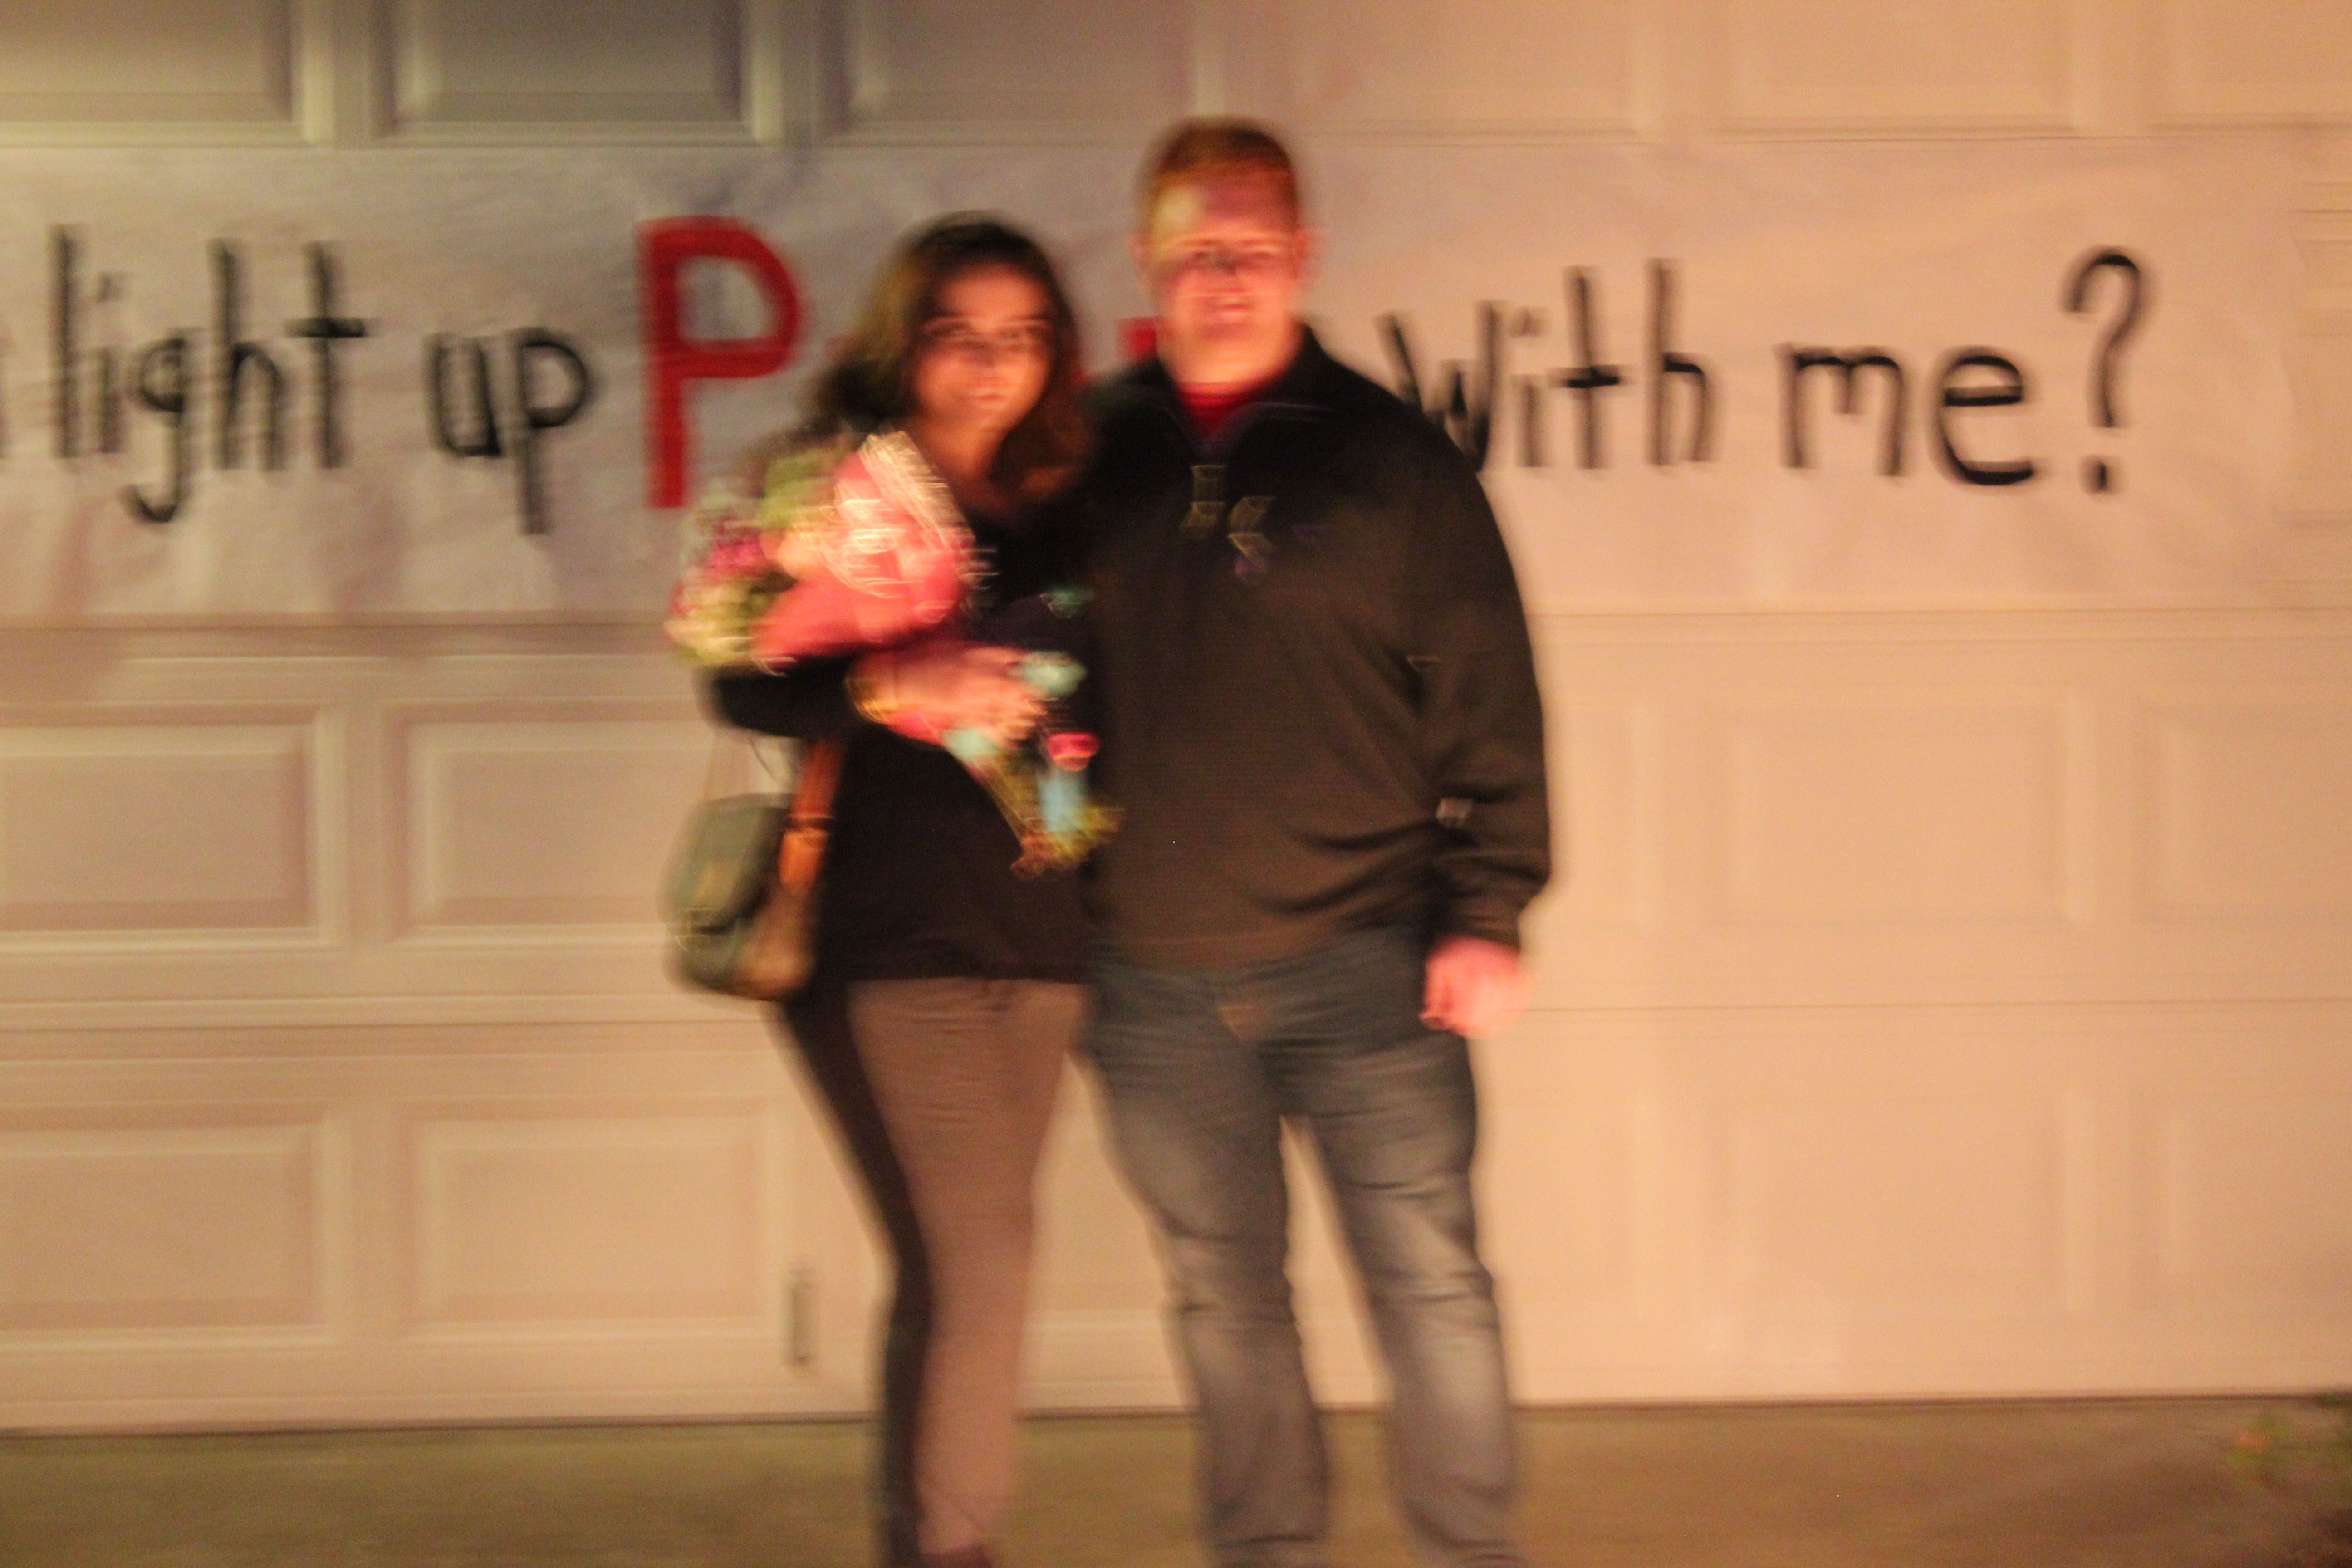 pin by amy gibbons on prom proposal 2016 light up prom with me